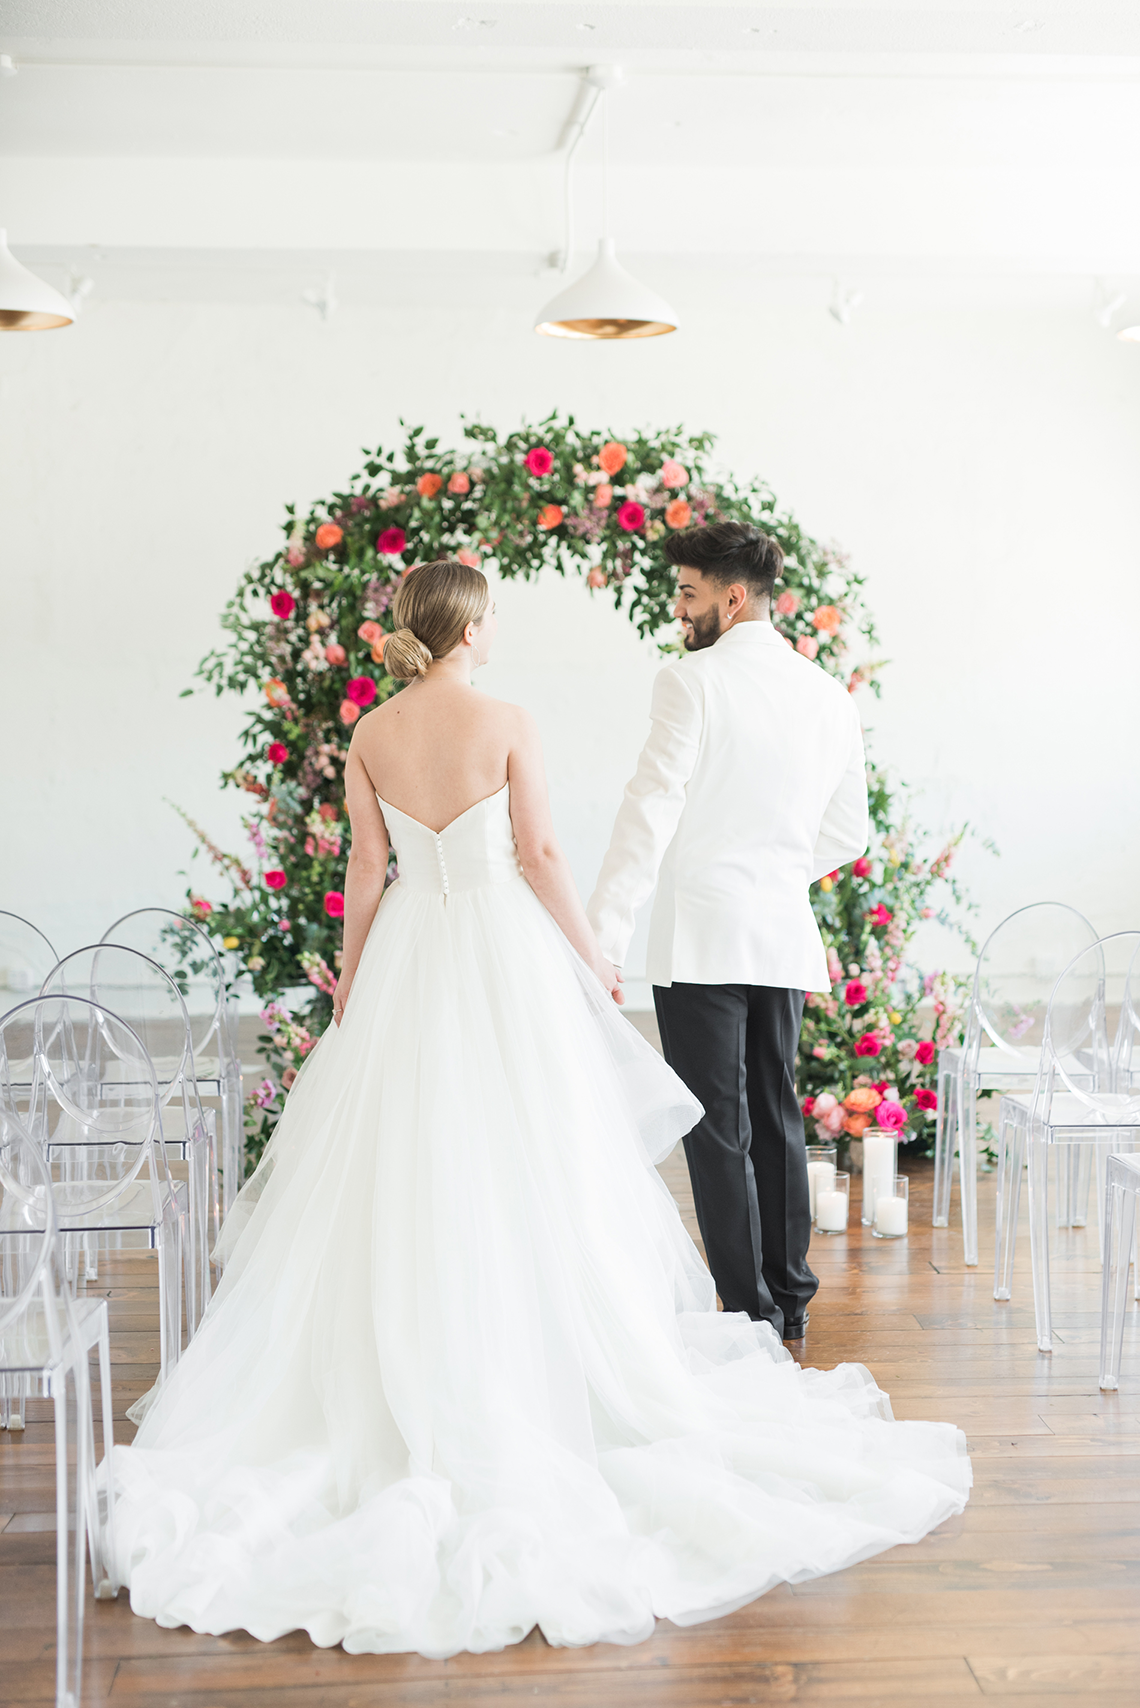 Floral-filled Indoor Garden Wedding Inspiration – Cristy Angulo Photography 27